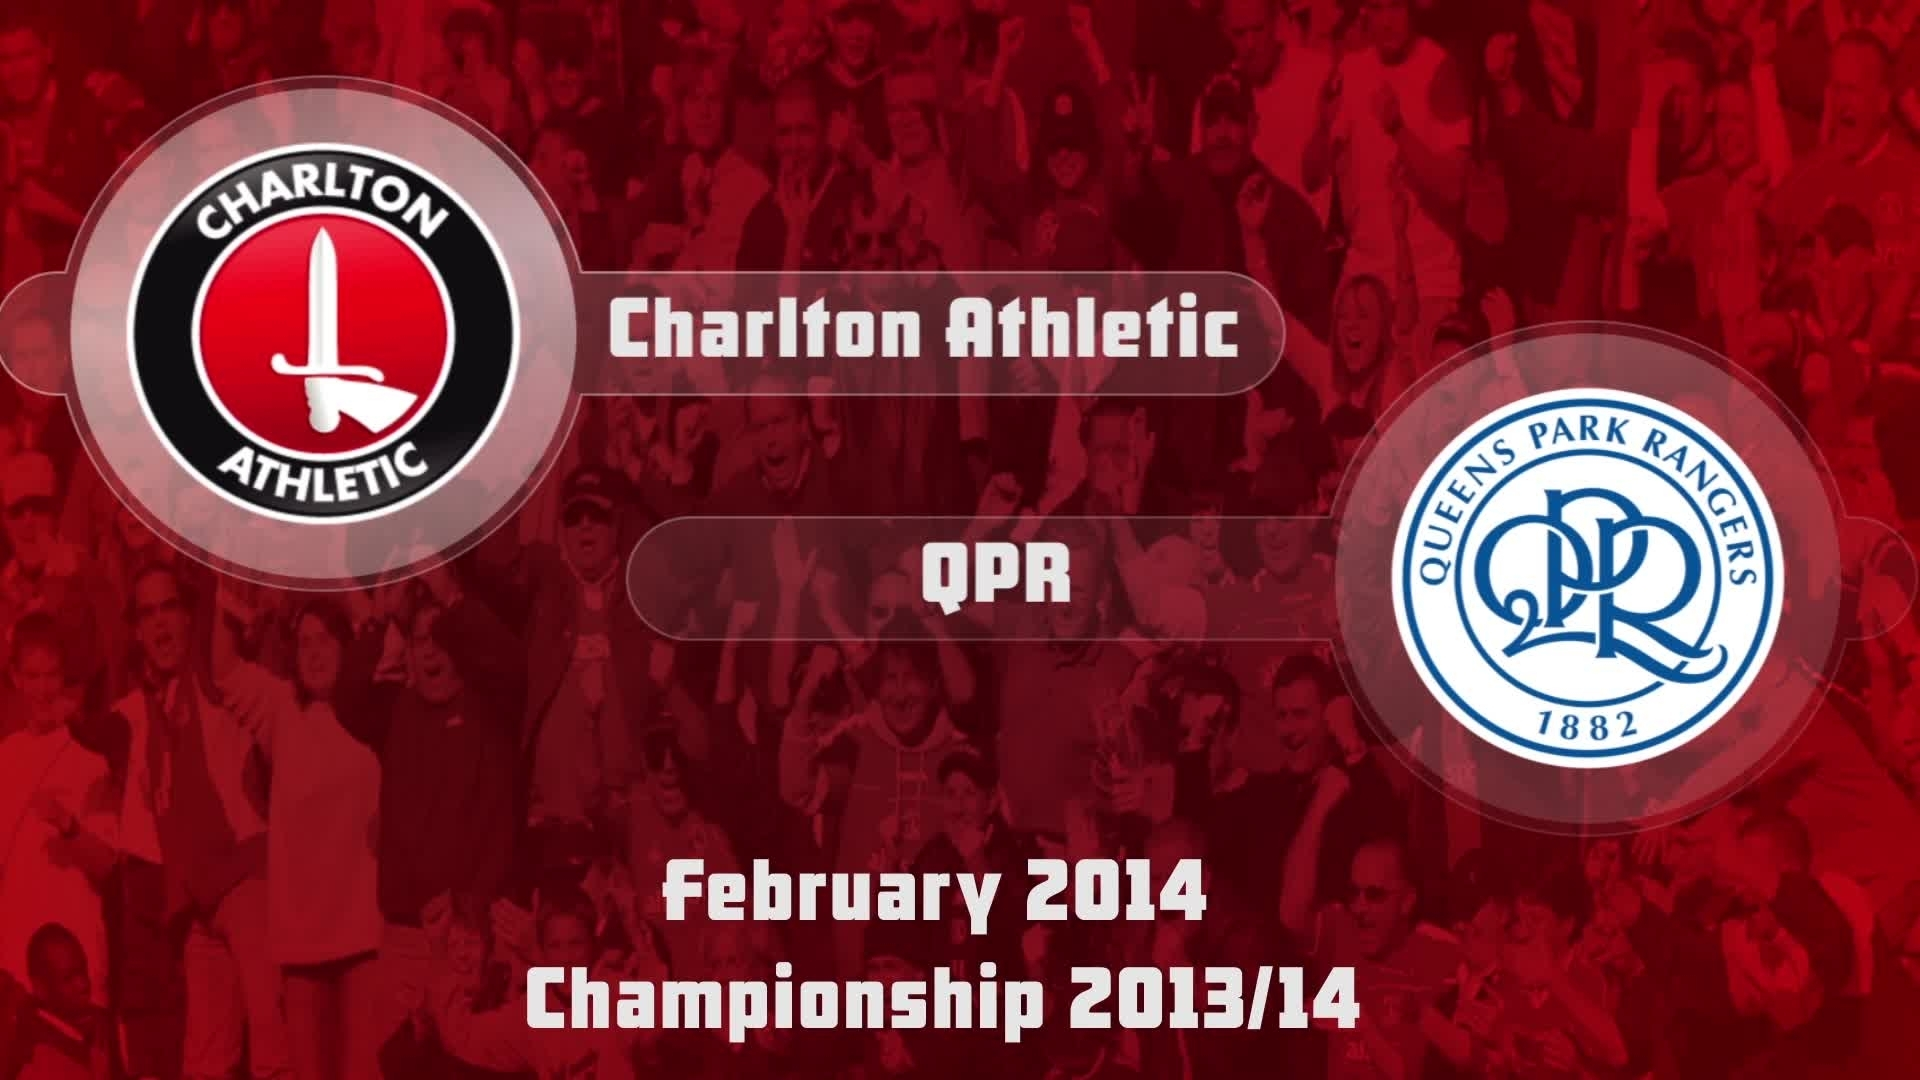 34 HIGHLIGHTS | Charlton 1 QPR 0 (Feb 2014)